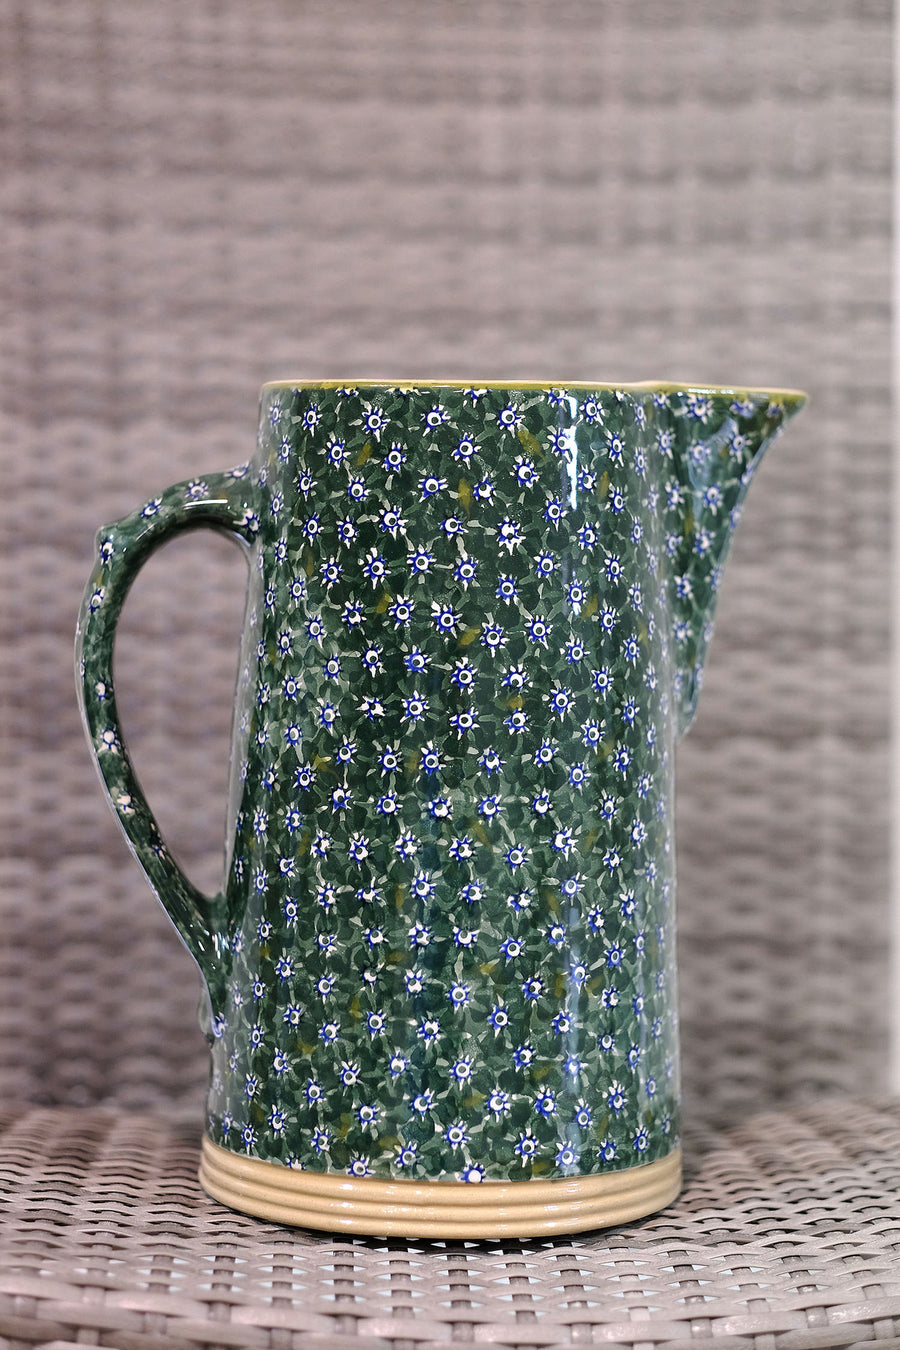 Lawn Green XL Jug spongeware by Nicholas Mosse Pottery - Ireland - Handmade Irish Craft